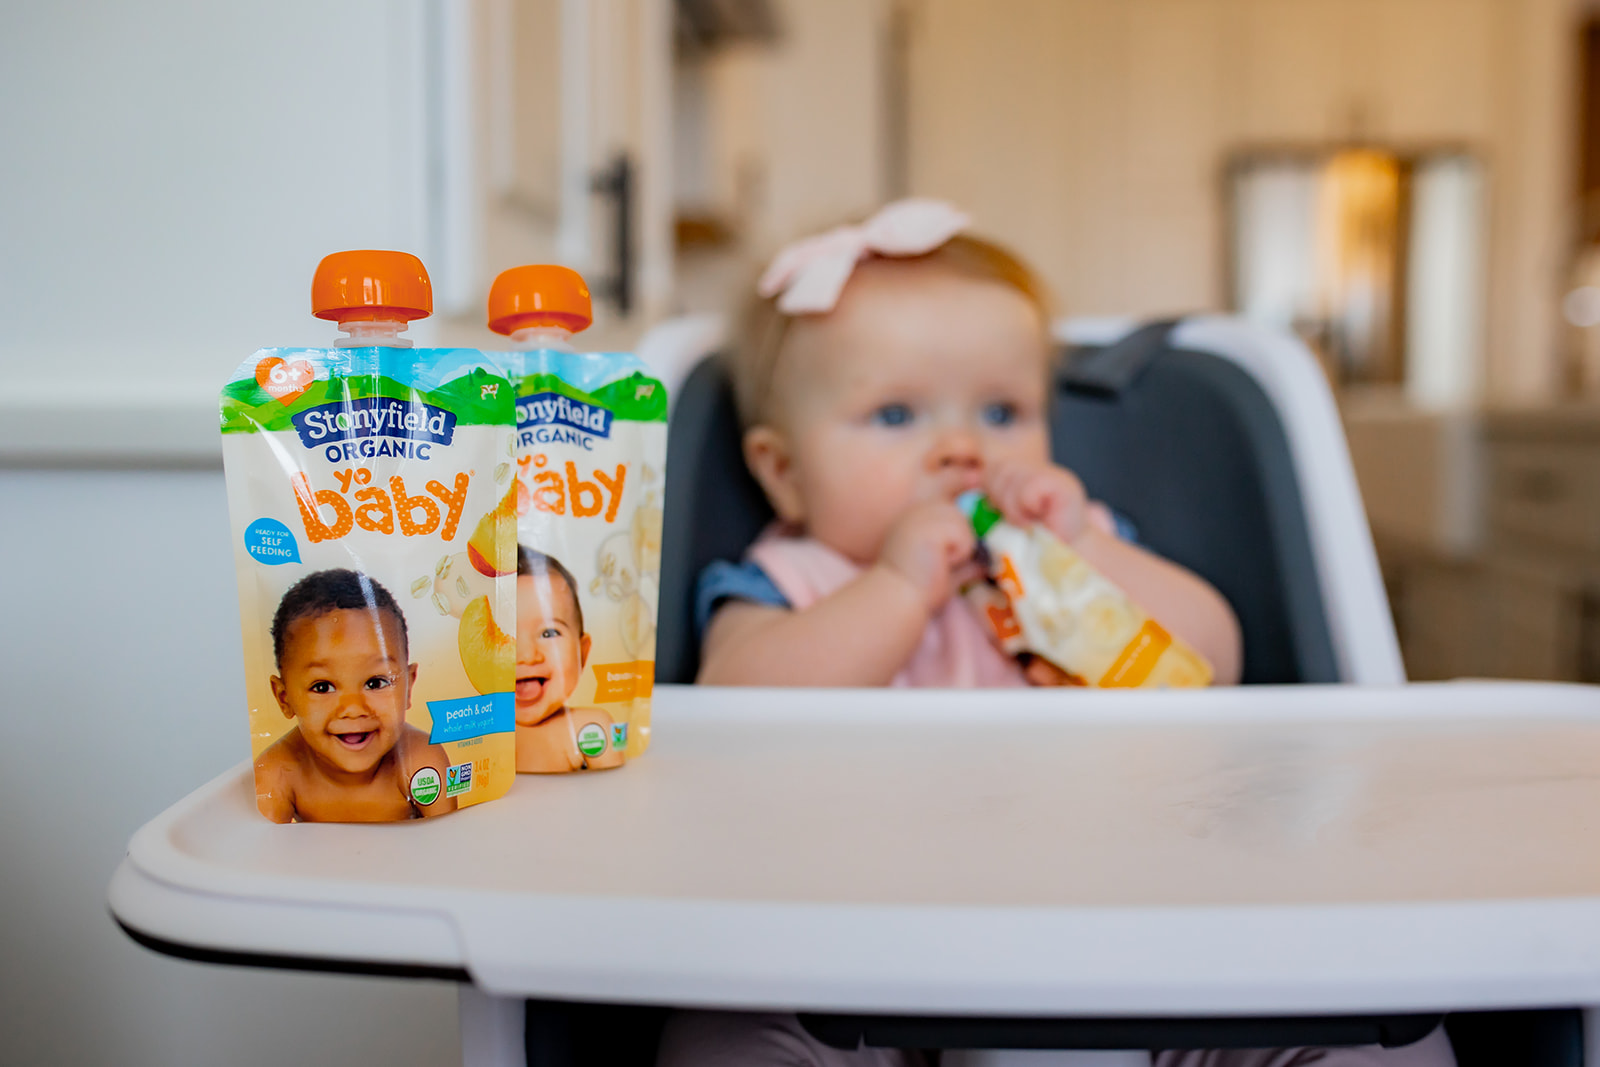 Stonyfield Yobaby pouch, in the background is a baby girl eating one of them.